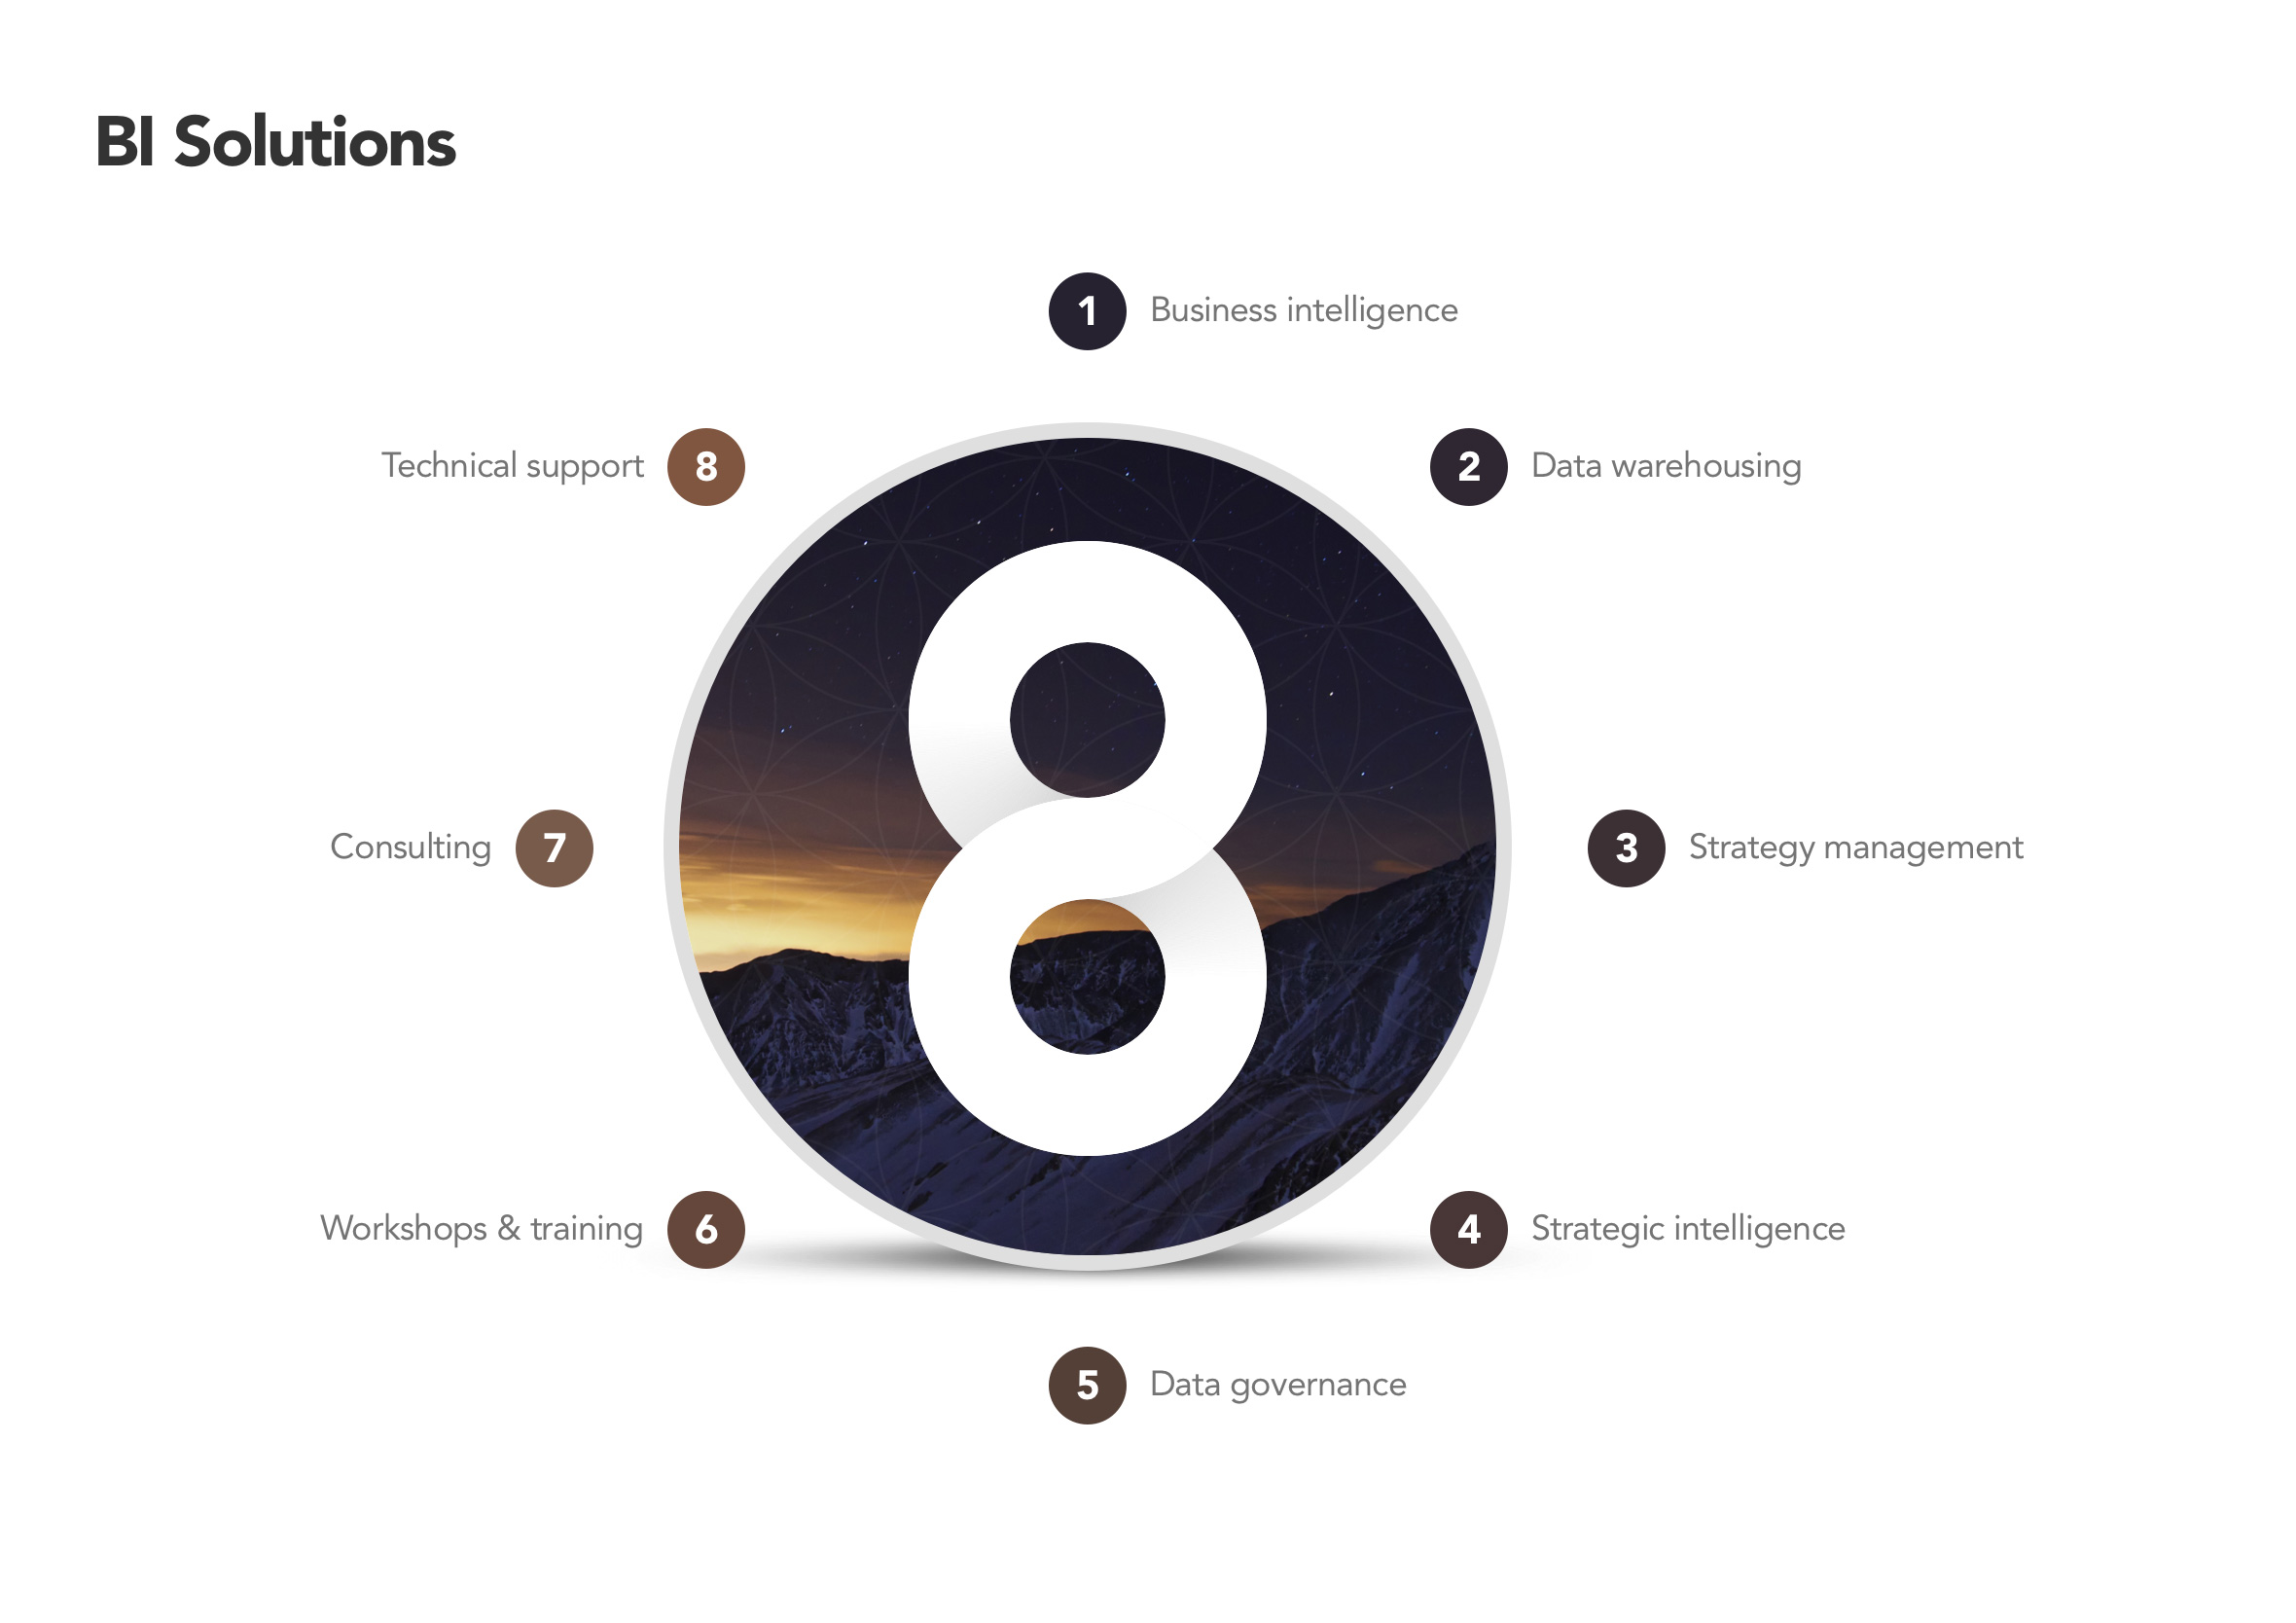 Mero PowerPoint template business intelligence solutions